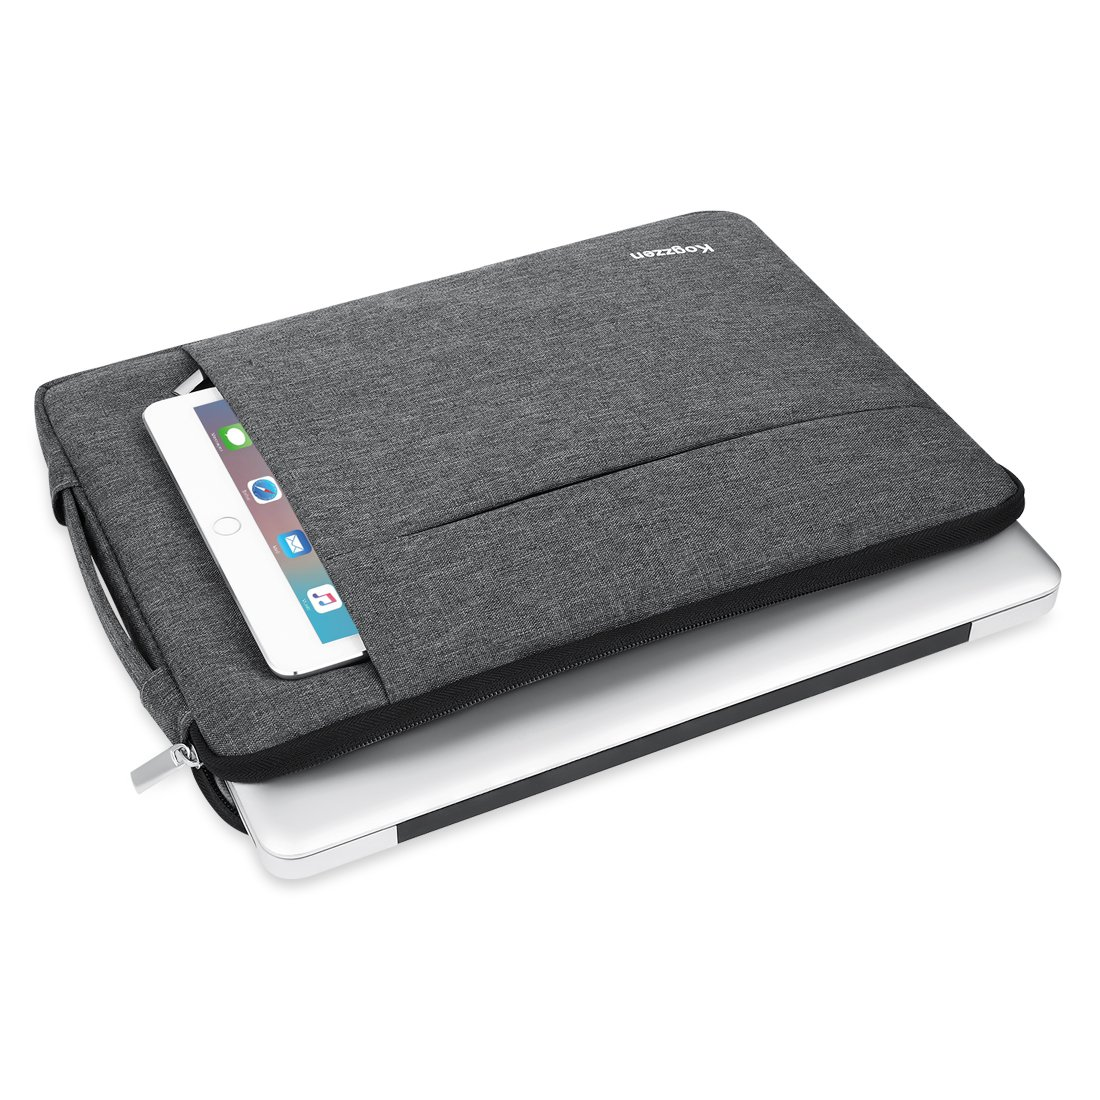 Kogzzen 13-13.5 Inch Laptop Sleeve Shockproof Lightweight Case Carrying Bag Compatible with MacBook Pro 13 inch/MacBook Air 13.3/ Dell XPS 13/ Surface Book 2 13.5/ Surface Laptop/iPad Pro 12.9 - Gray by Kogzzen (Image #2)